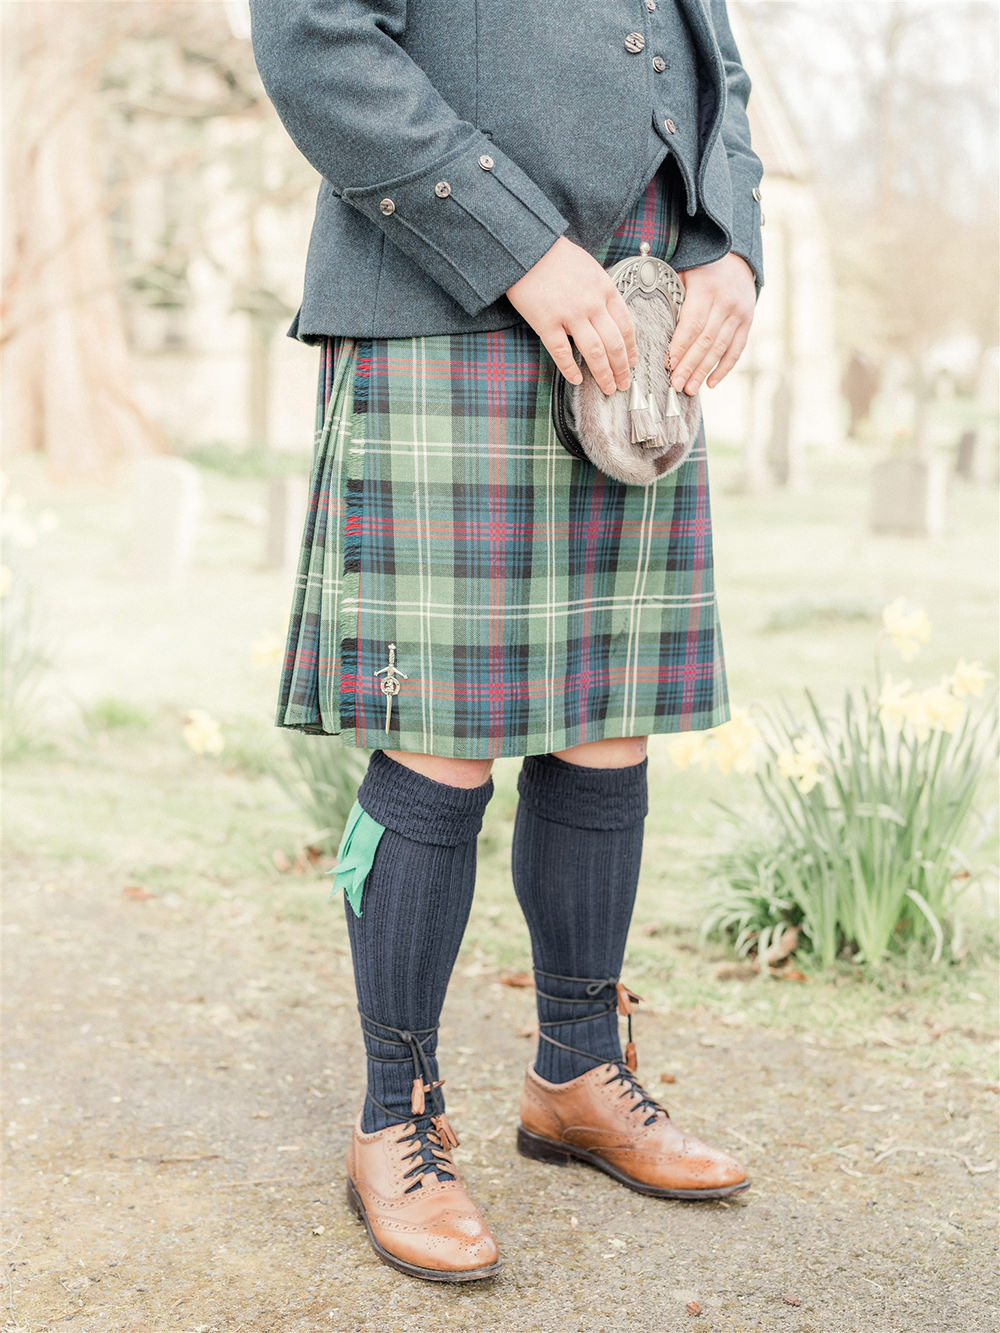 Groom Kilt Suit Tartan Tie Lockdown Wedding Carn Patrick Photography